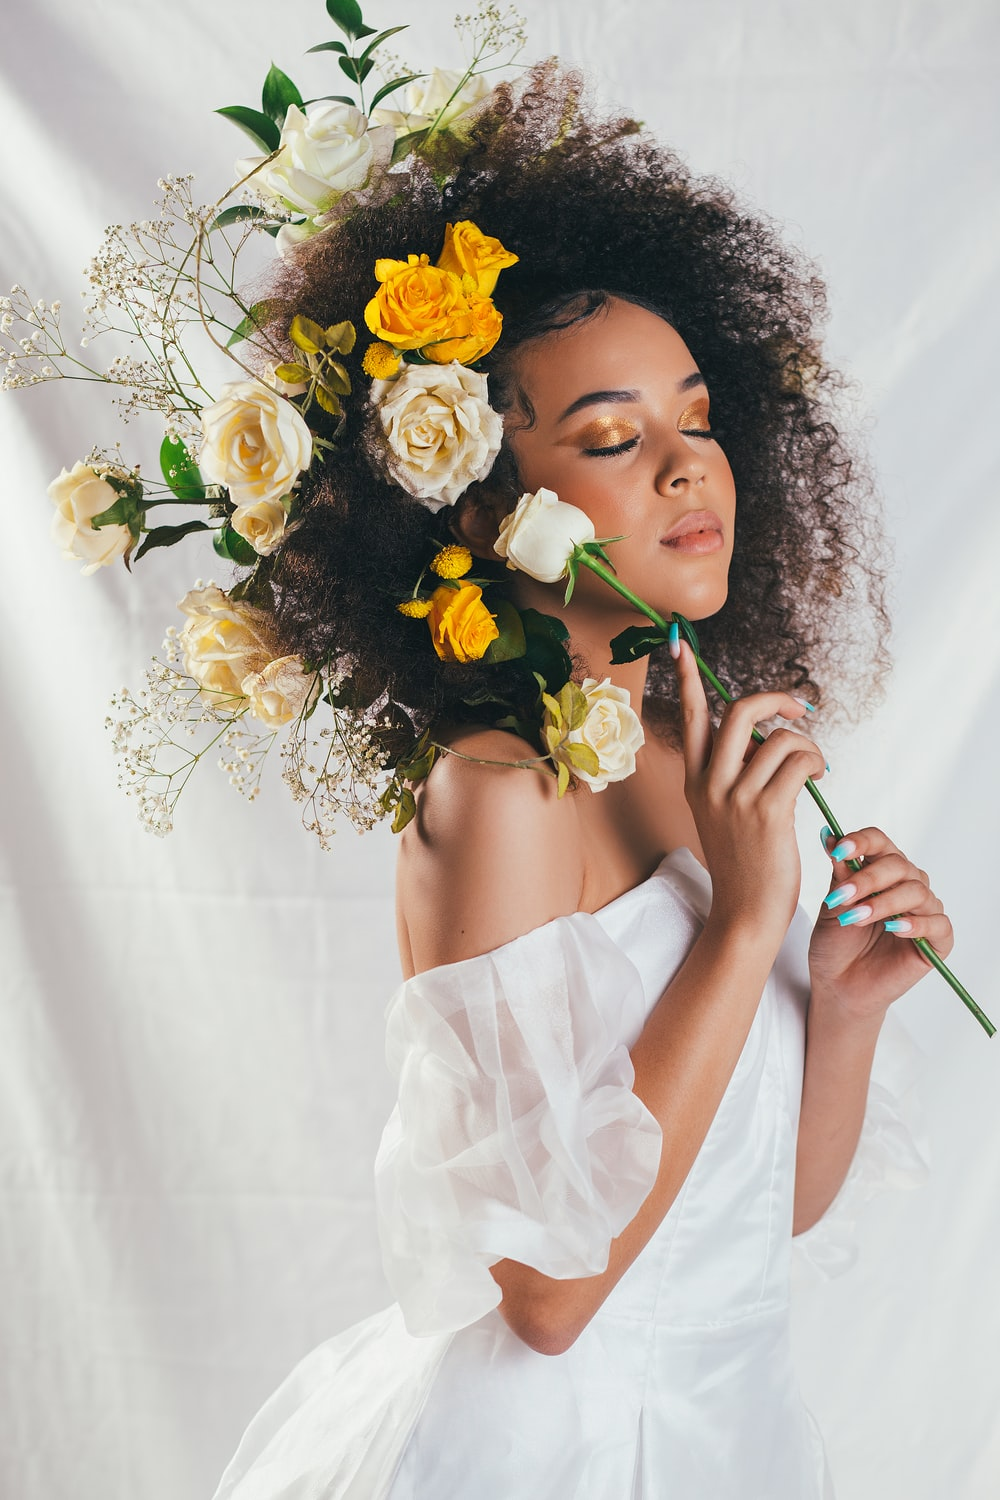 woman in white off shoulder dress holding yellow and white flower bouquet